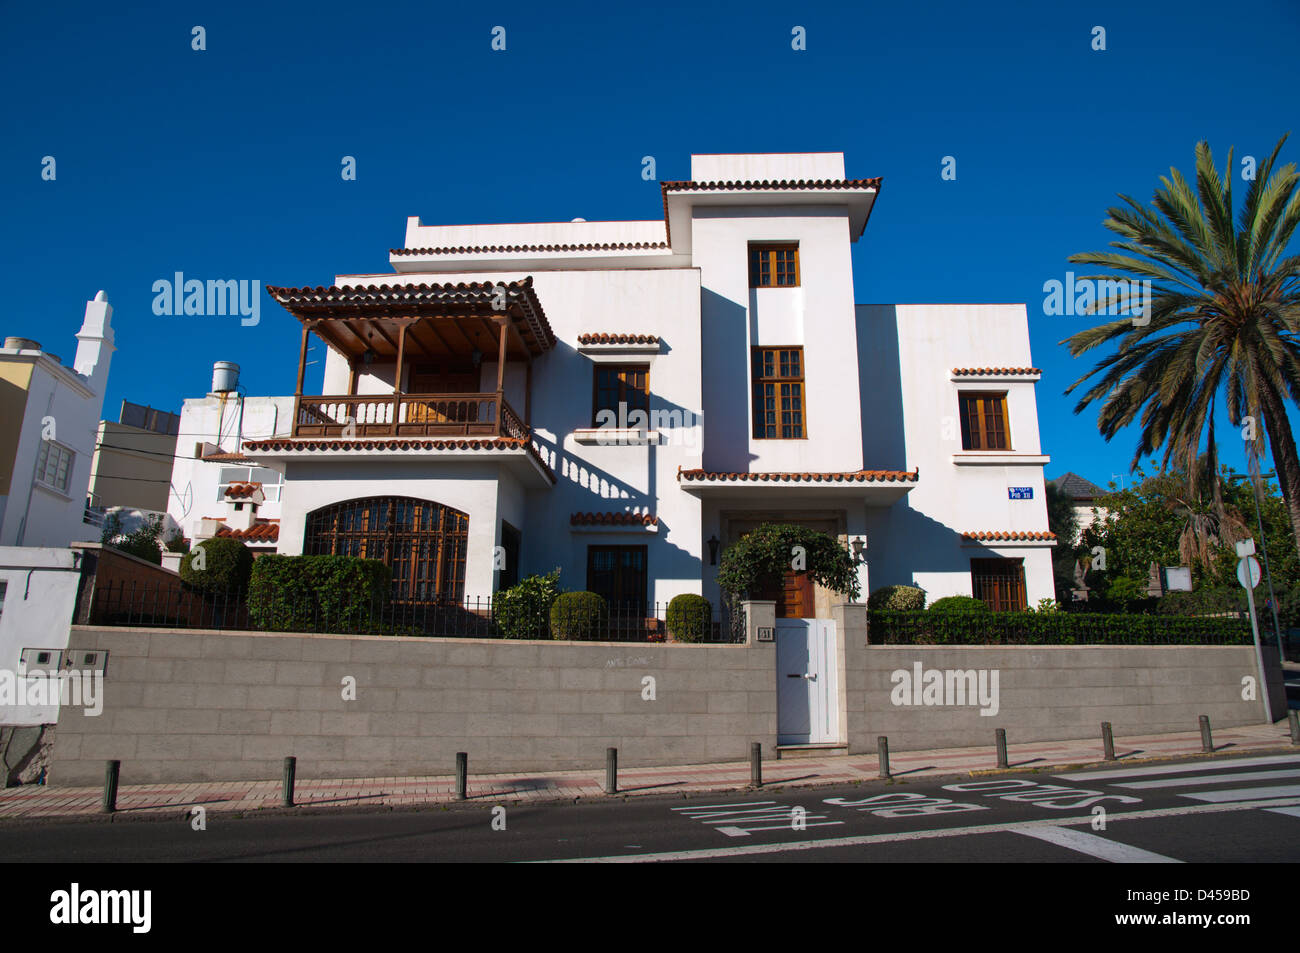 Residential villa El Ciudad Jardin the Garden district Las Palmas de Gran Canaria city Gran Canaria island Spain - Stock Image